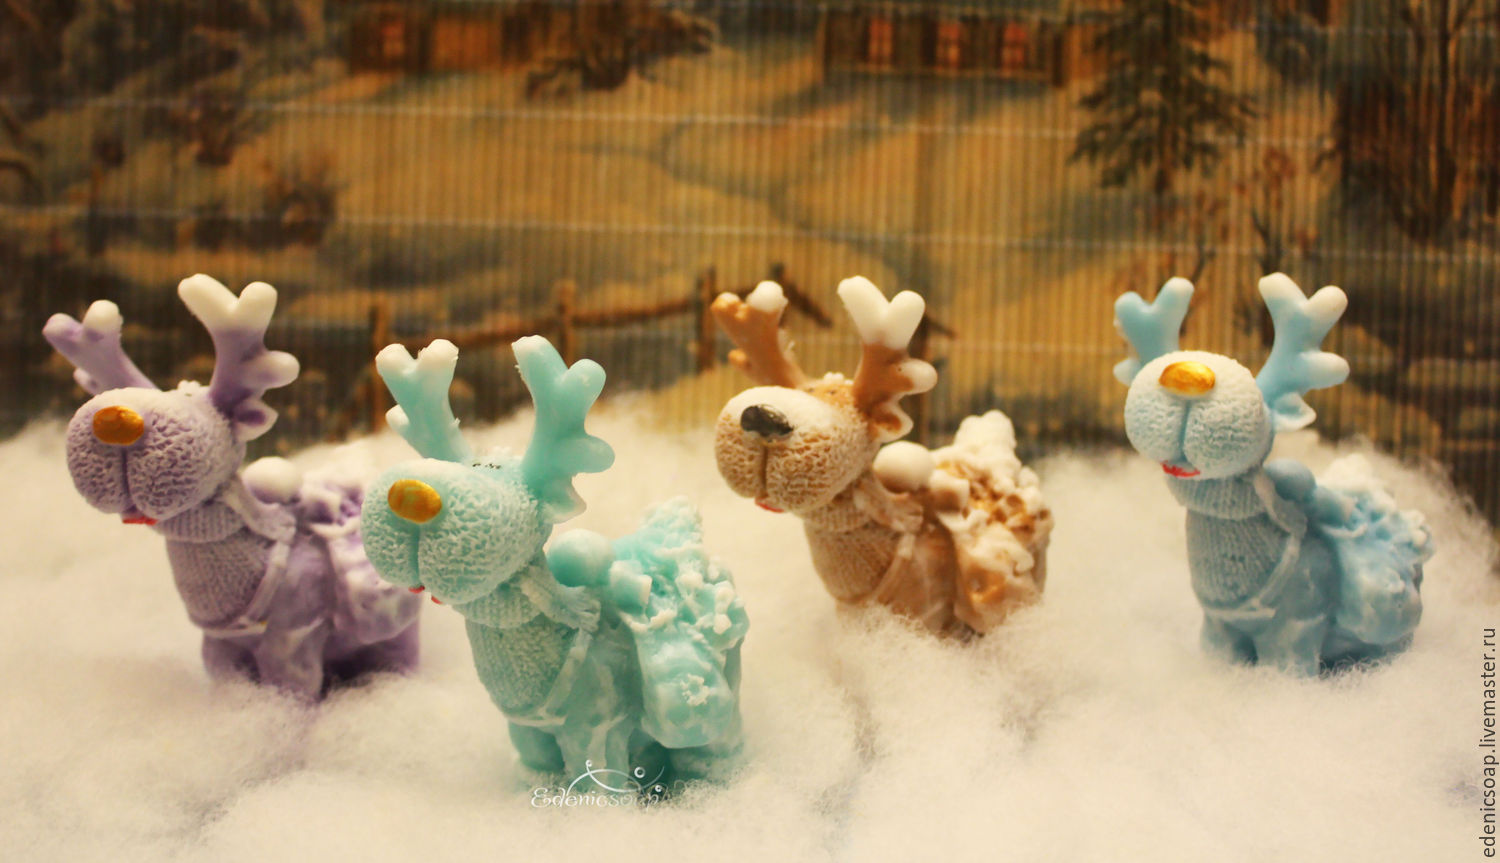 Christmas gifts. Handmade soap. Gifts to colleagues,family and friends.Edenicsoap.